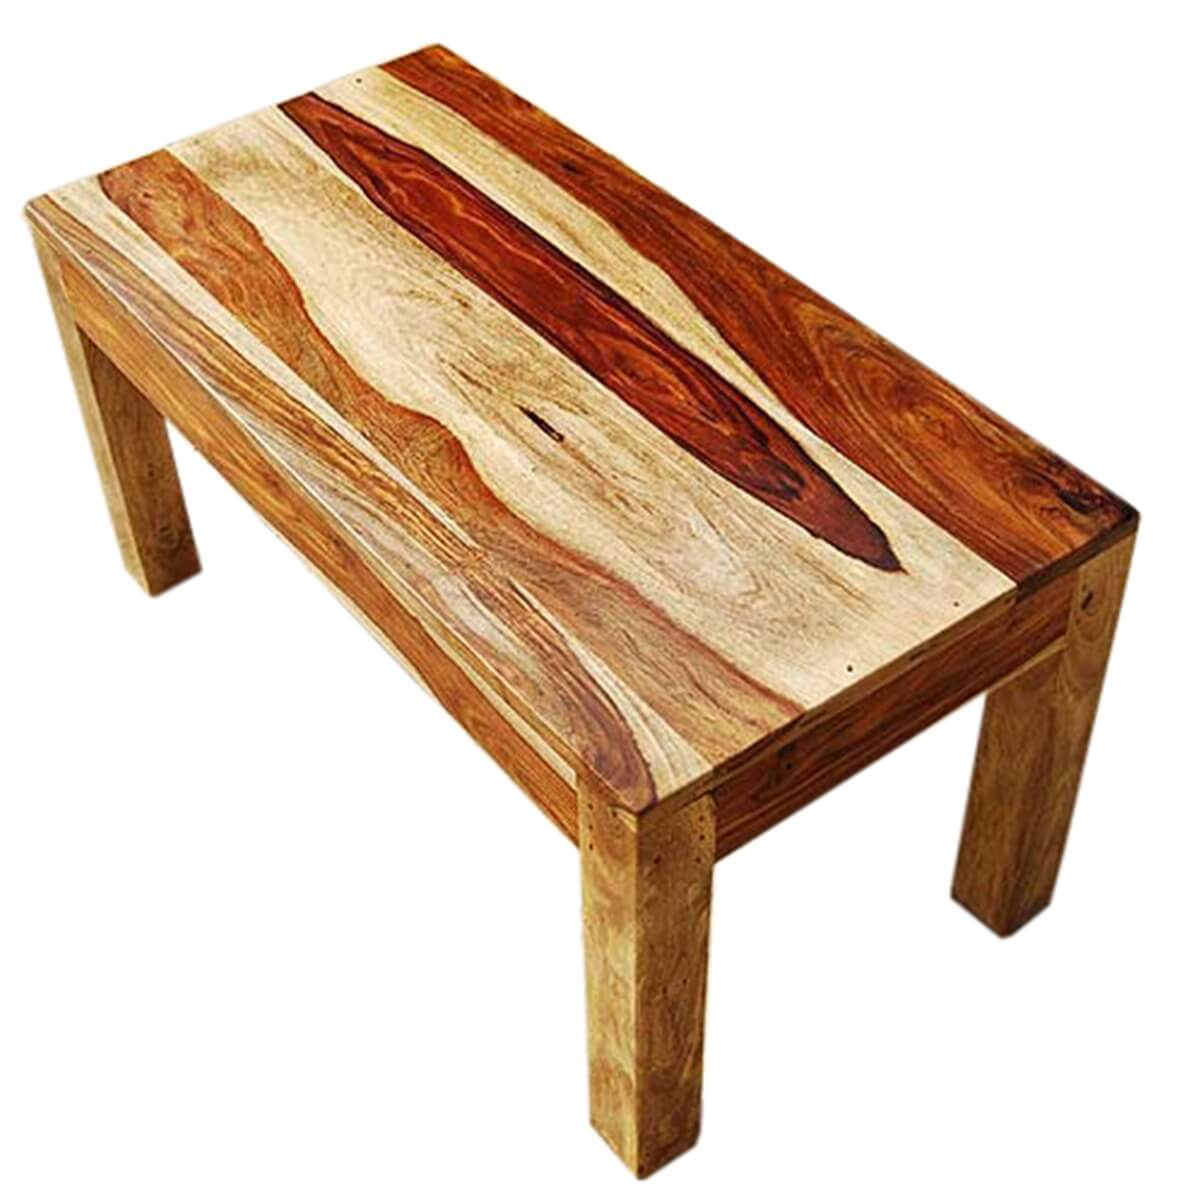 Solid Wood Coffee Tables ~ Mission style solid wood rectangular coffee table